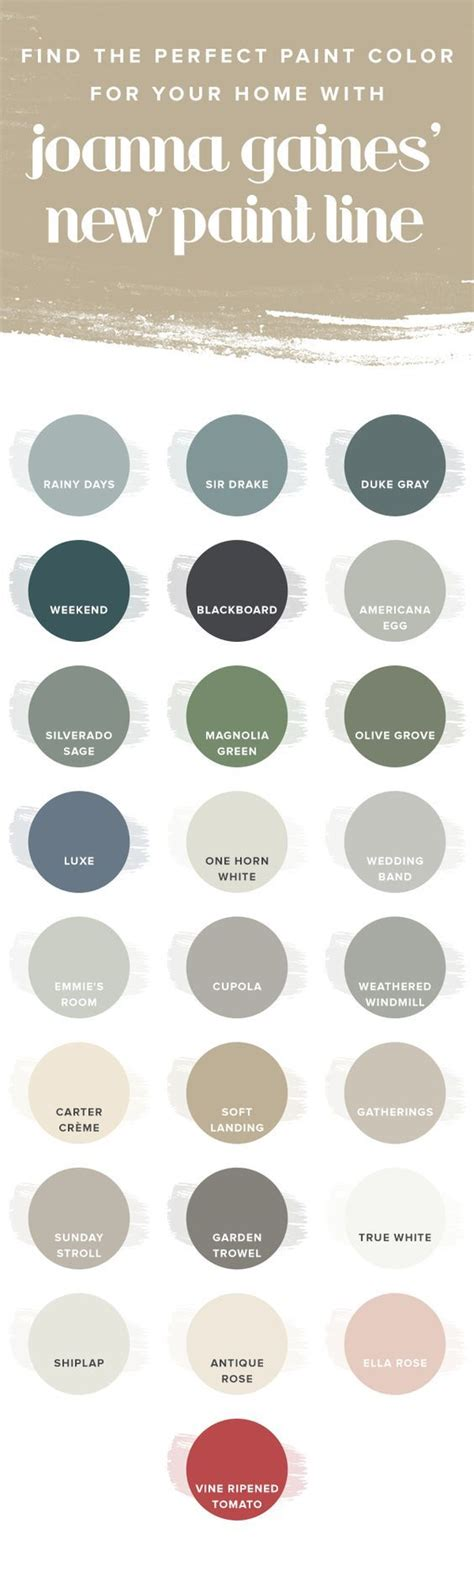 paint colors joanna gaines uses fixer upper joanna gaines latest news may bring her